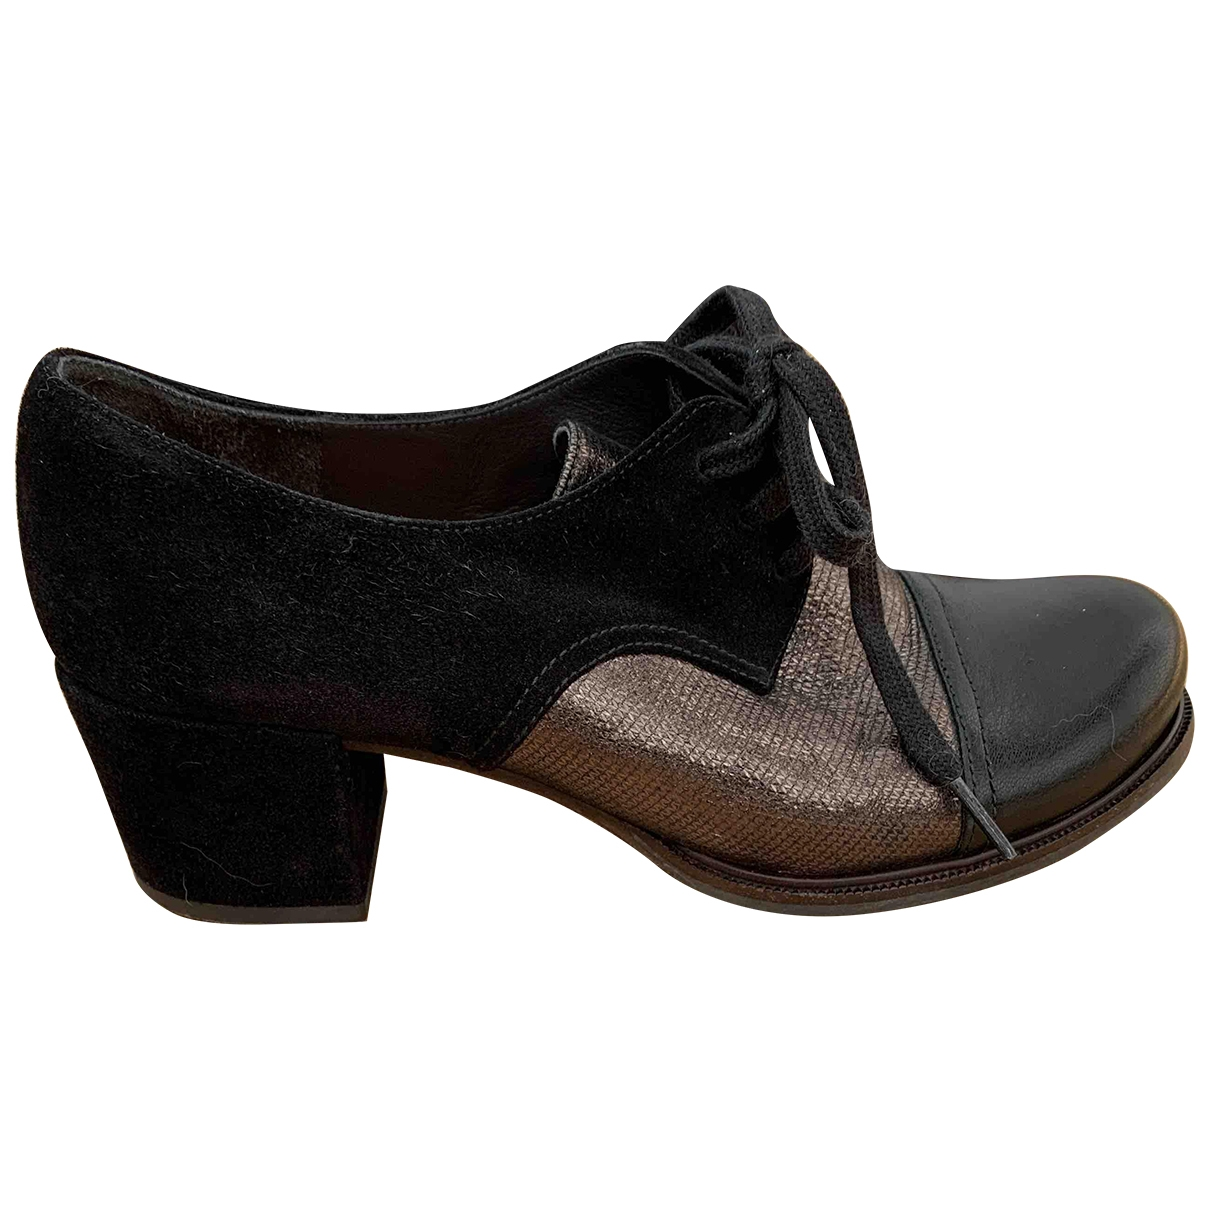 Chie Mihara \N Black Suede Lace ups for Women 38 EU